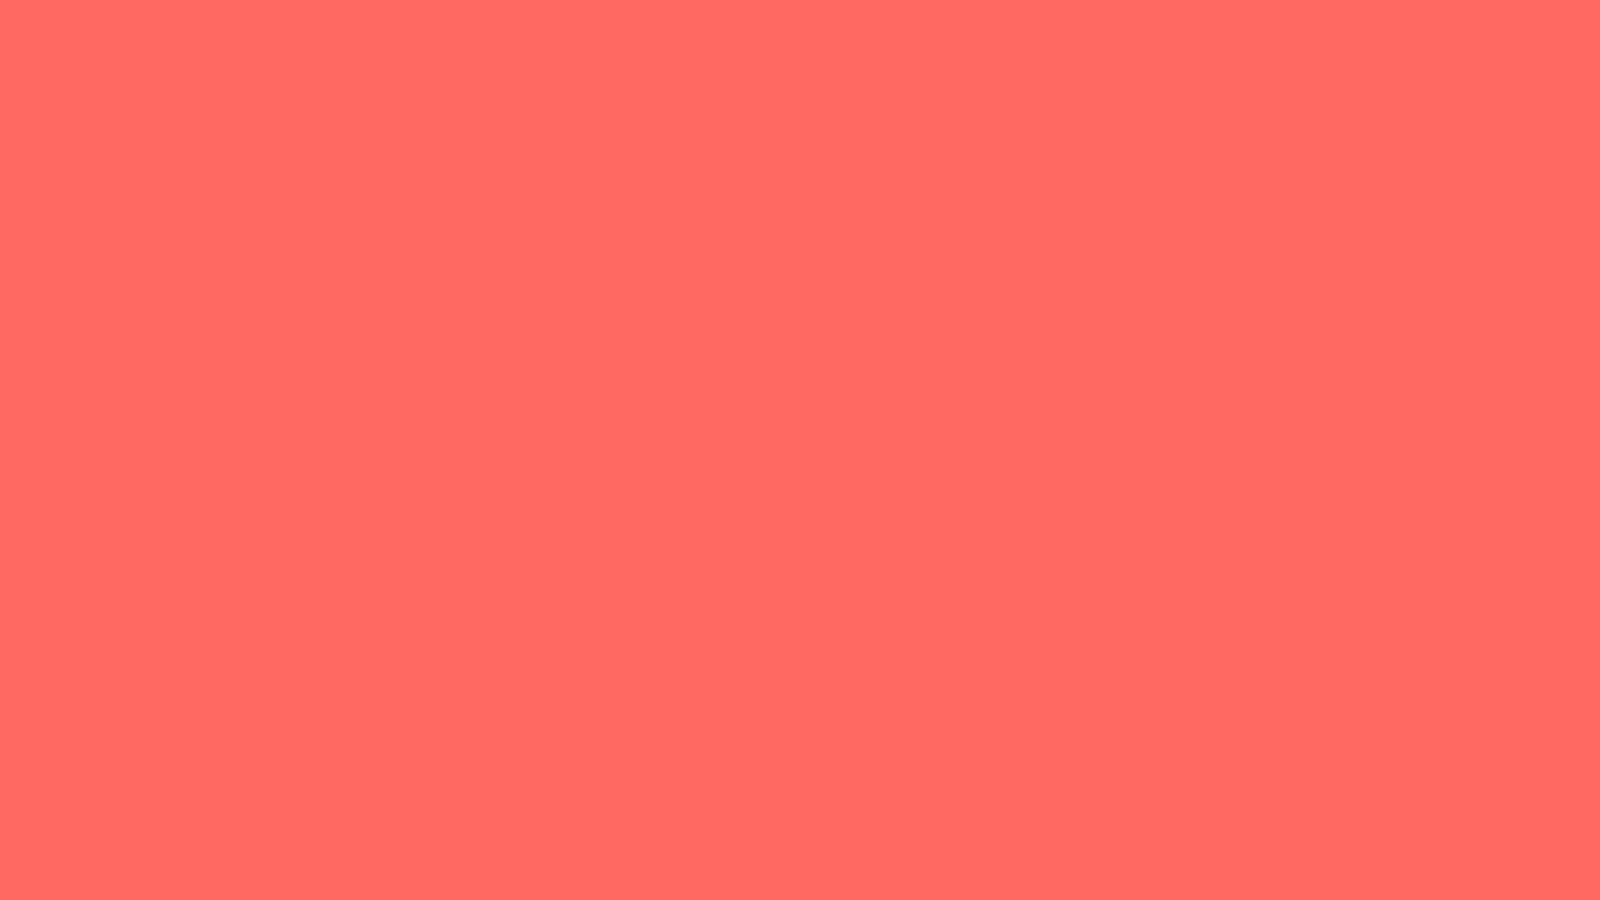 1600x900 Pastel Red Solid Color Background